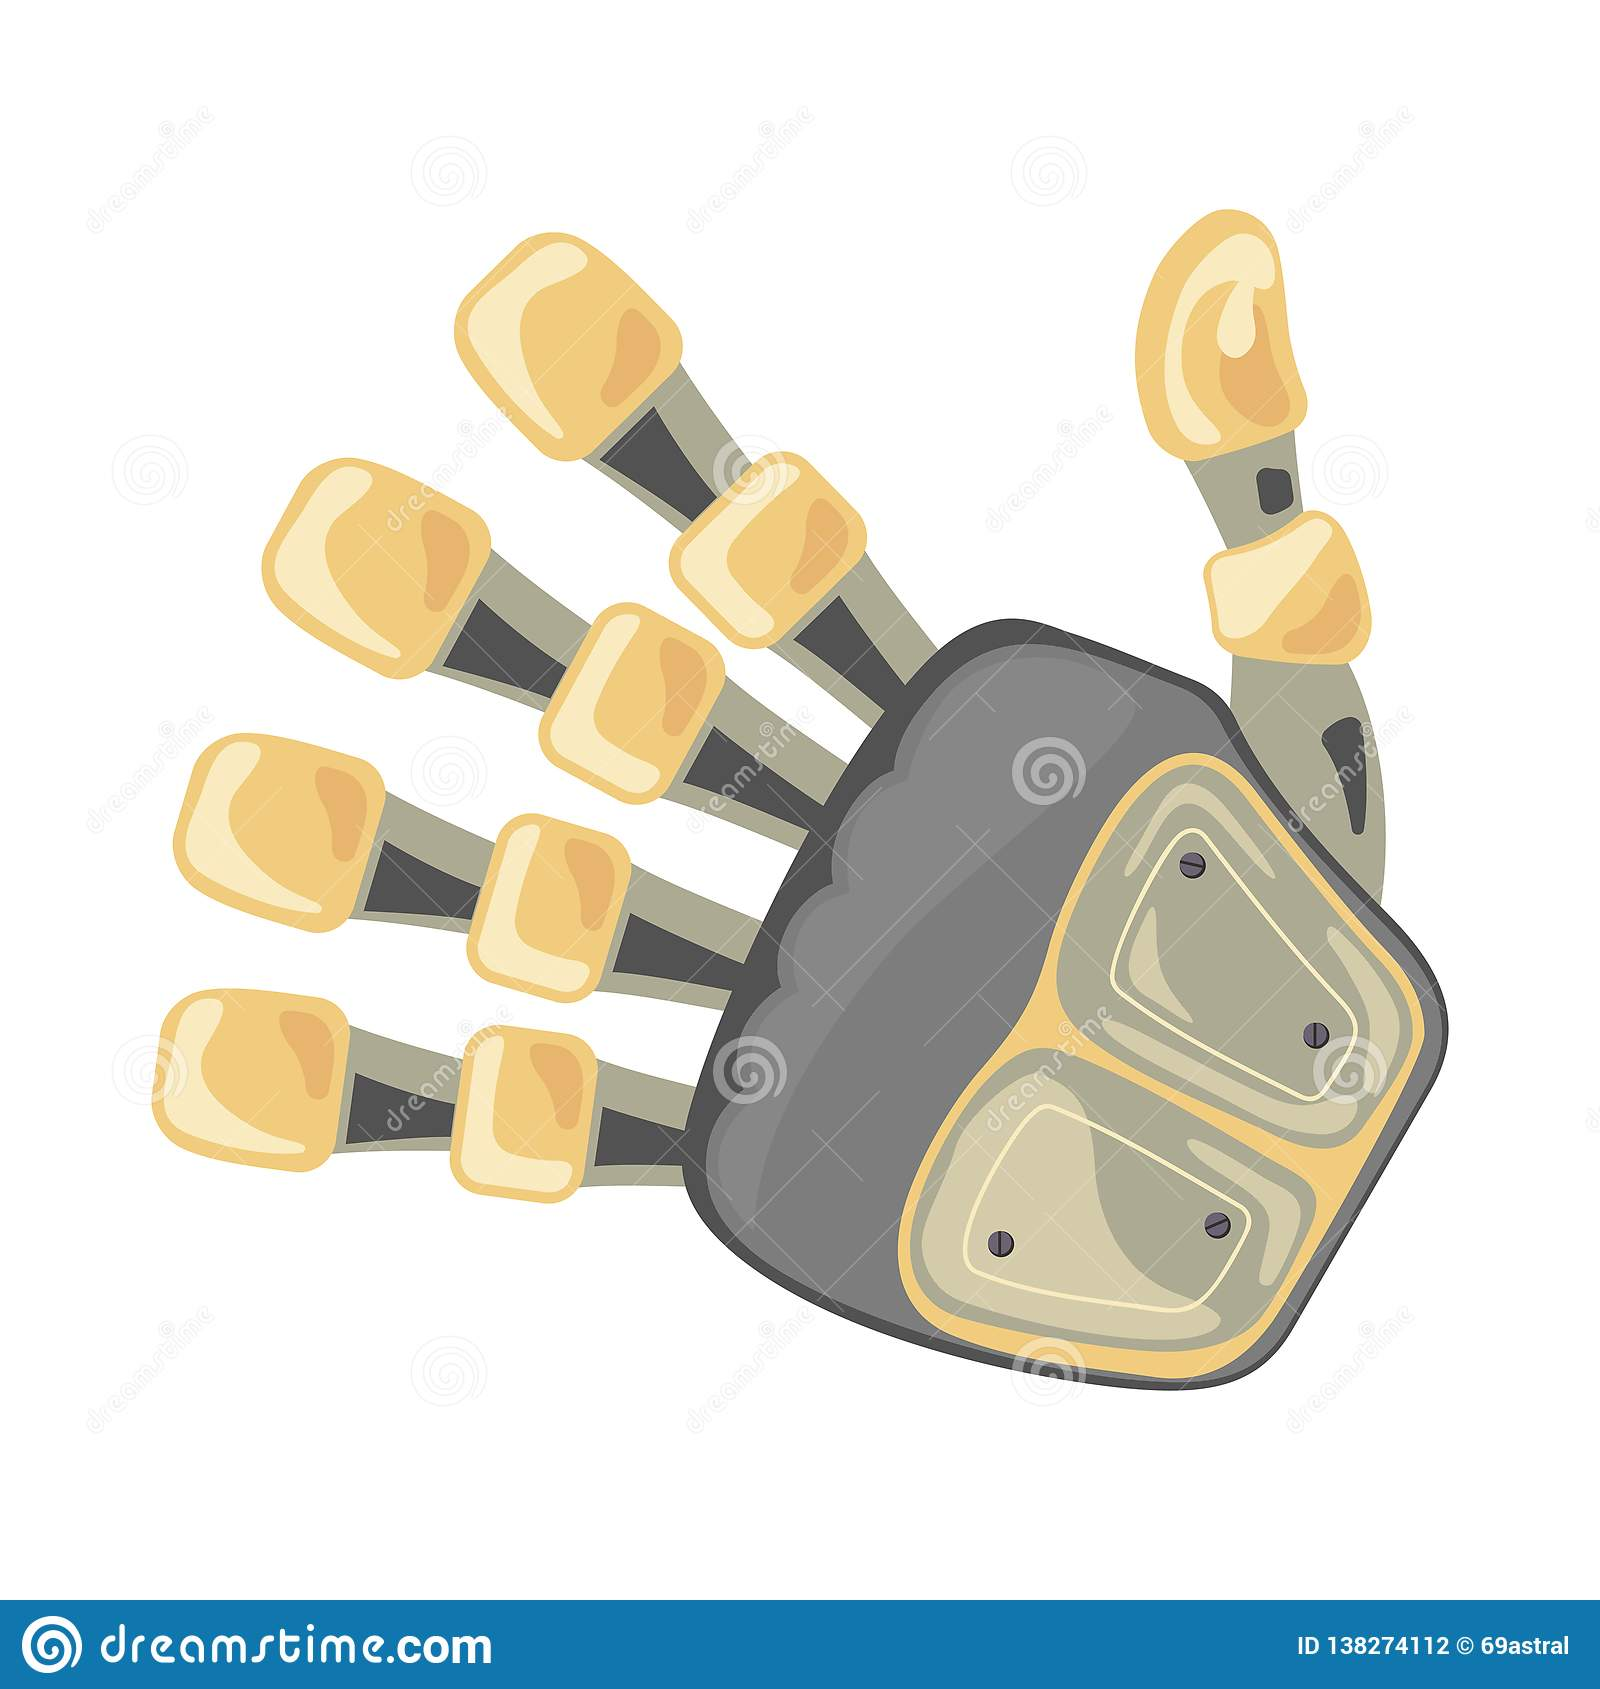 Robot hand. Mechanical technology machine engineering symbol. Hand gestures. Five number. Fifth. Futuristic design.